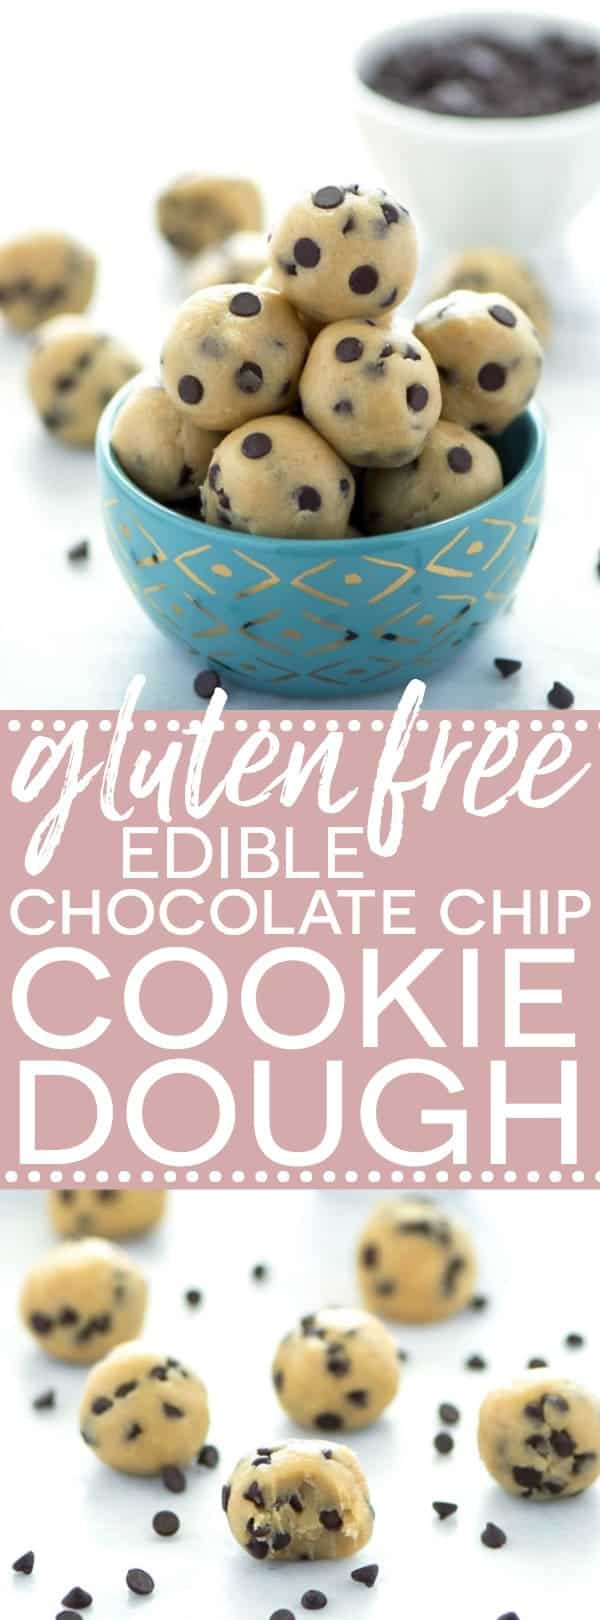 Gluten Free Edible Chocolate Chip Cookie Dough (egg free recipe with a dairy free + vegan option). No bake chocolate chip cookie dough bites. Recipe from @whattheforkblog | whattheforkfoodblog.com | easy gluten free desserts | no-bake recipes | summer desserts | edible cookie dough | gluten free dairy free recipes | how to make edible cookie dough